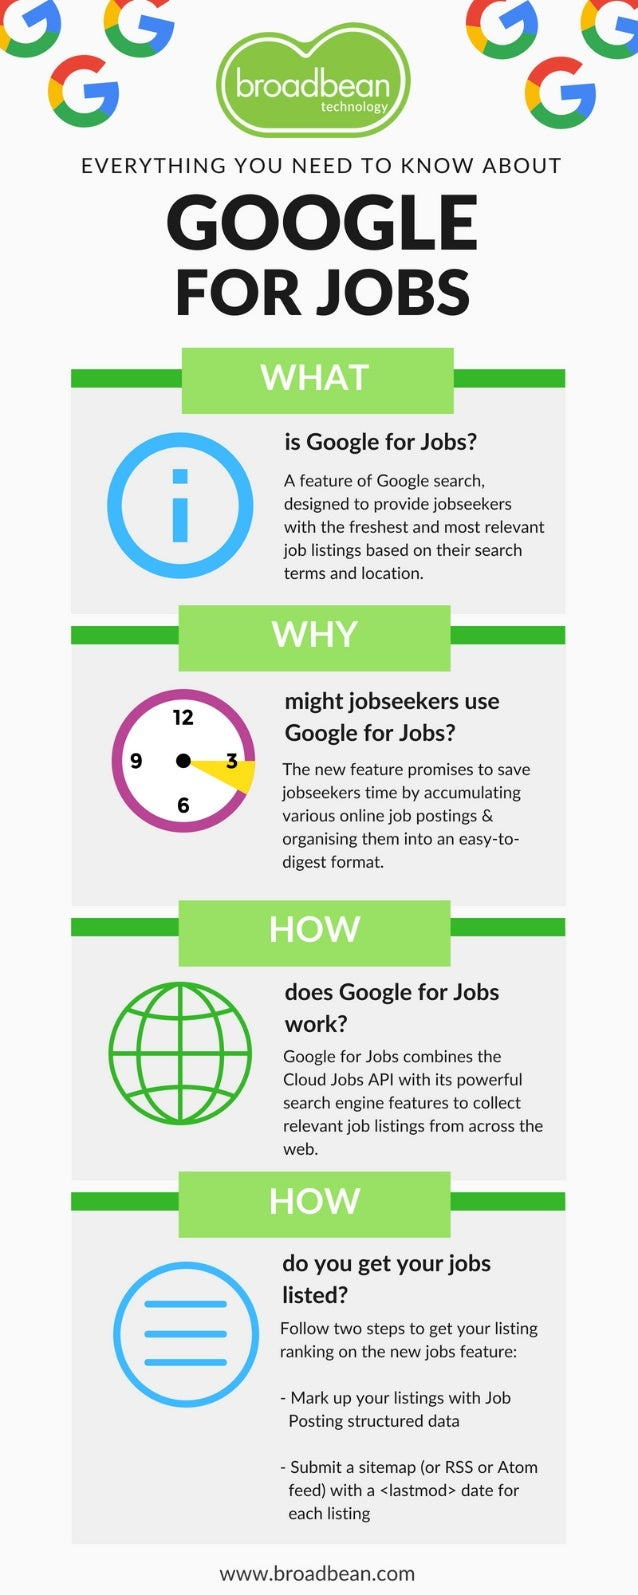 'Google for Jobs' - what is it and what does it do?